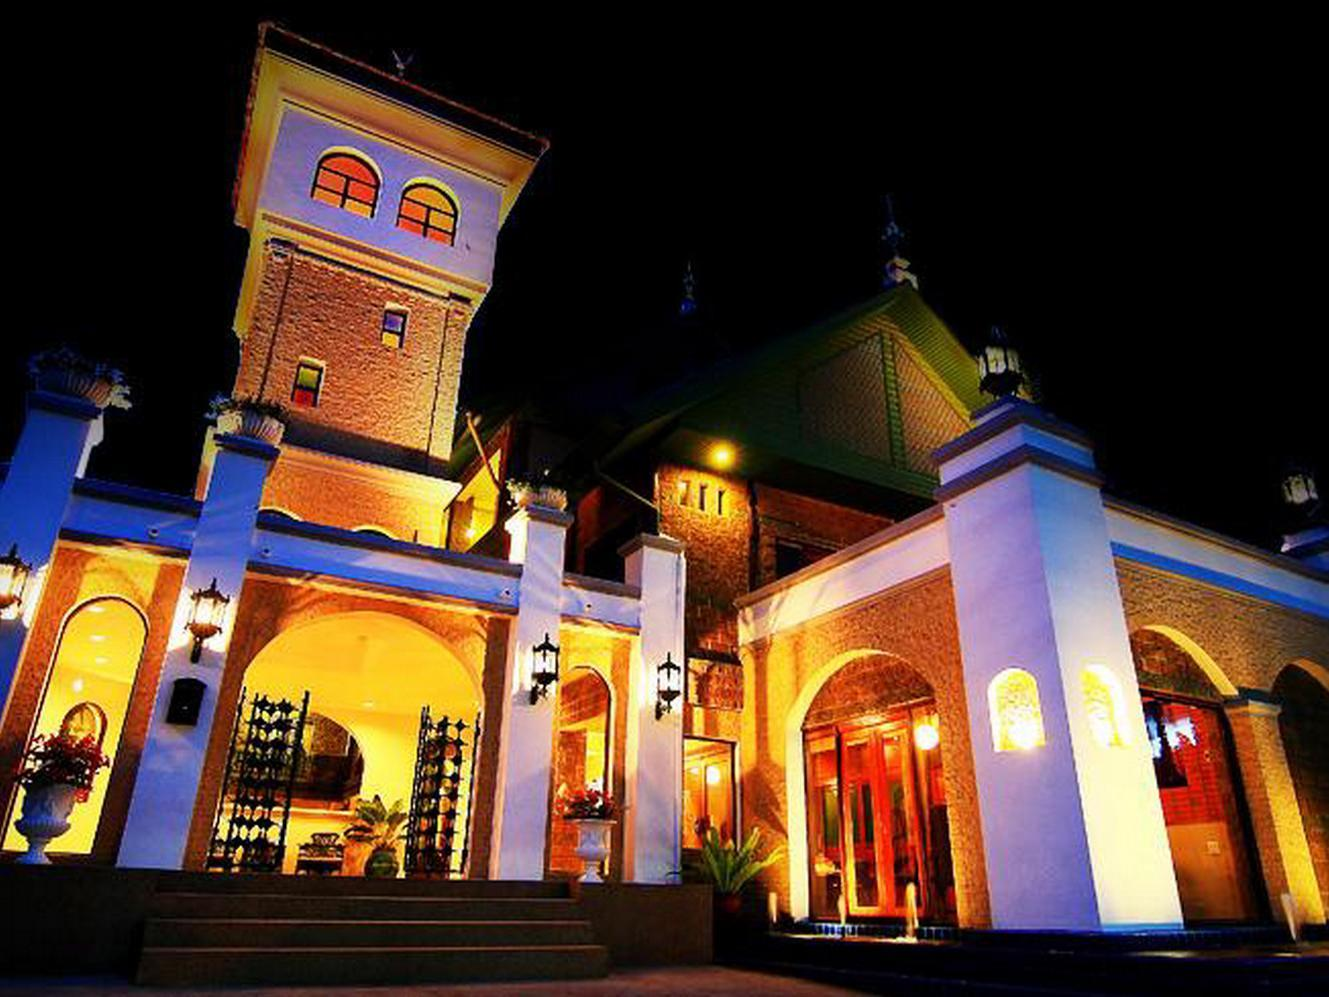 The Castle Chiangmai Hotel